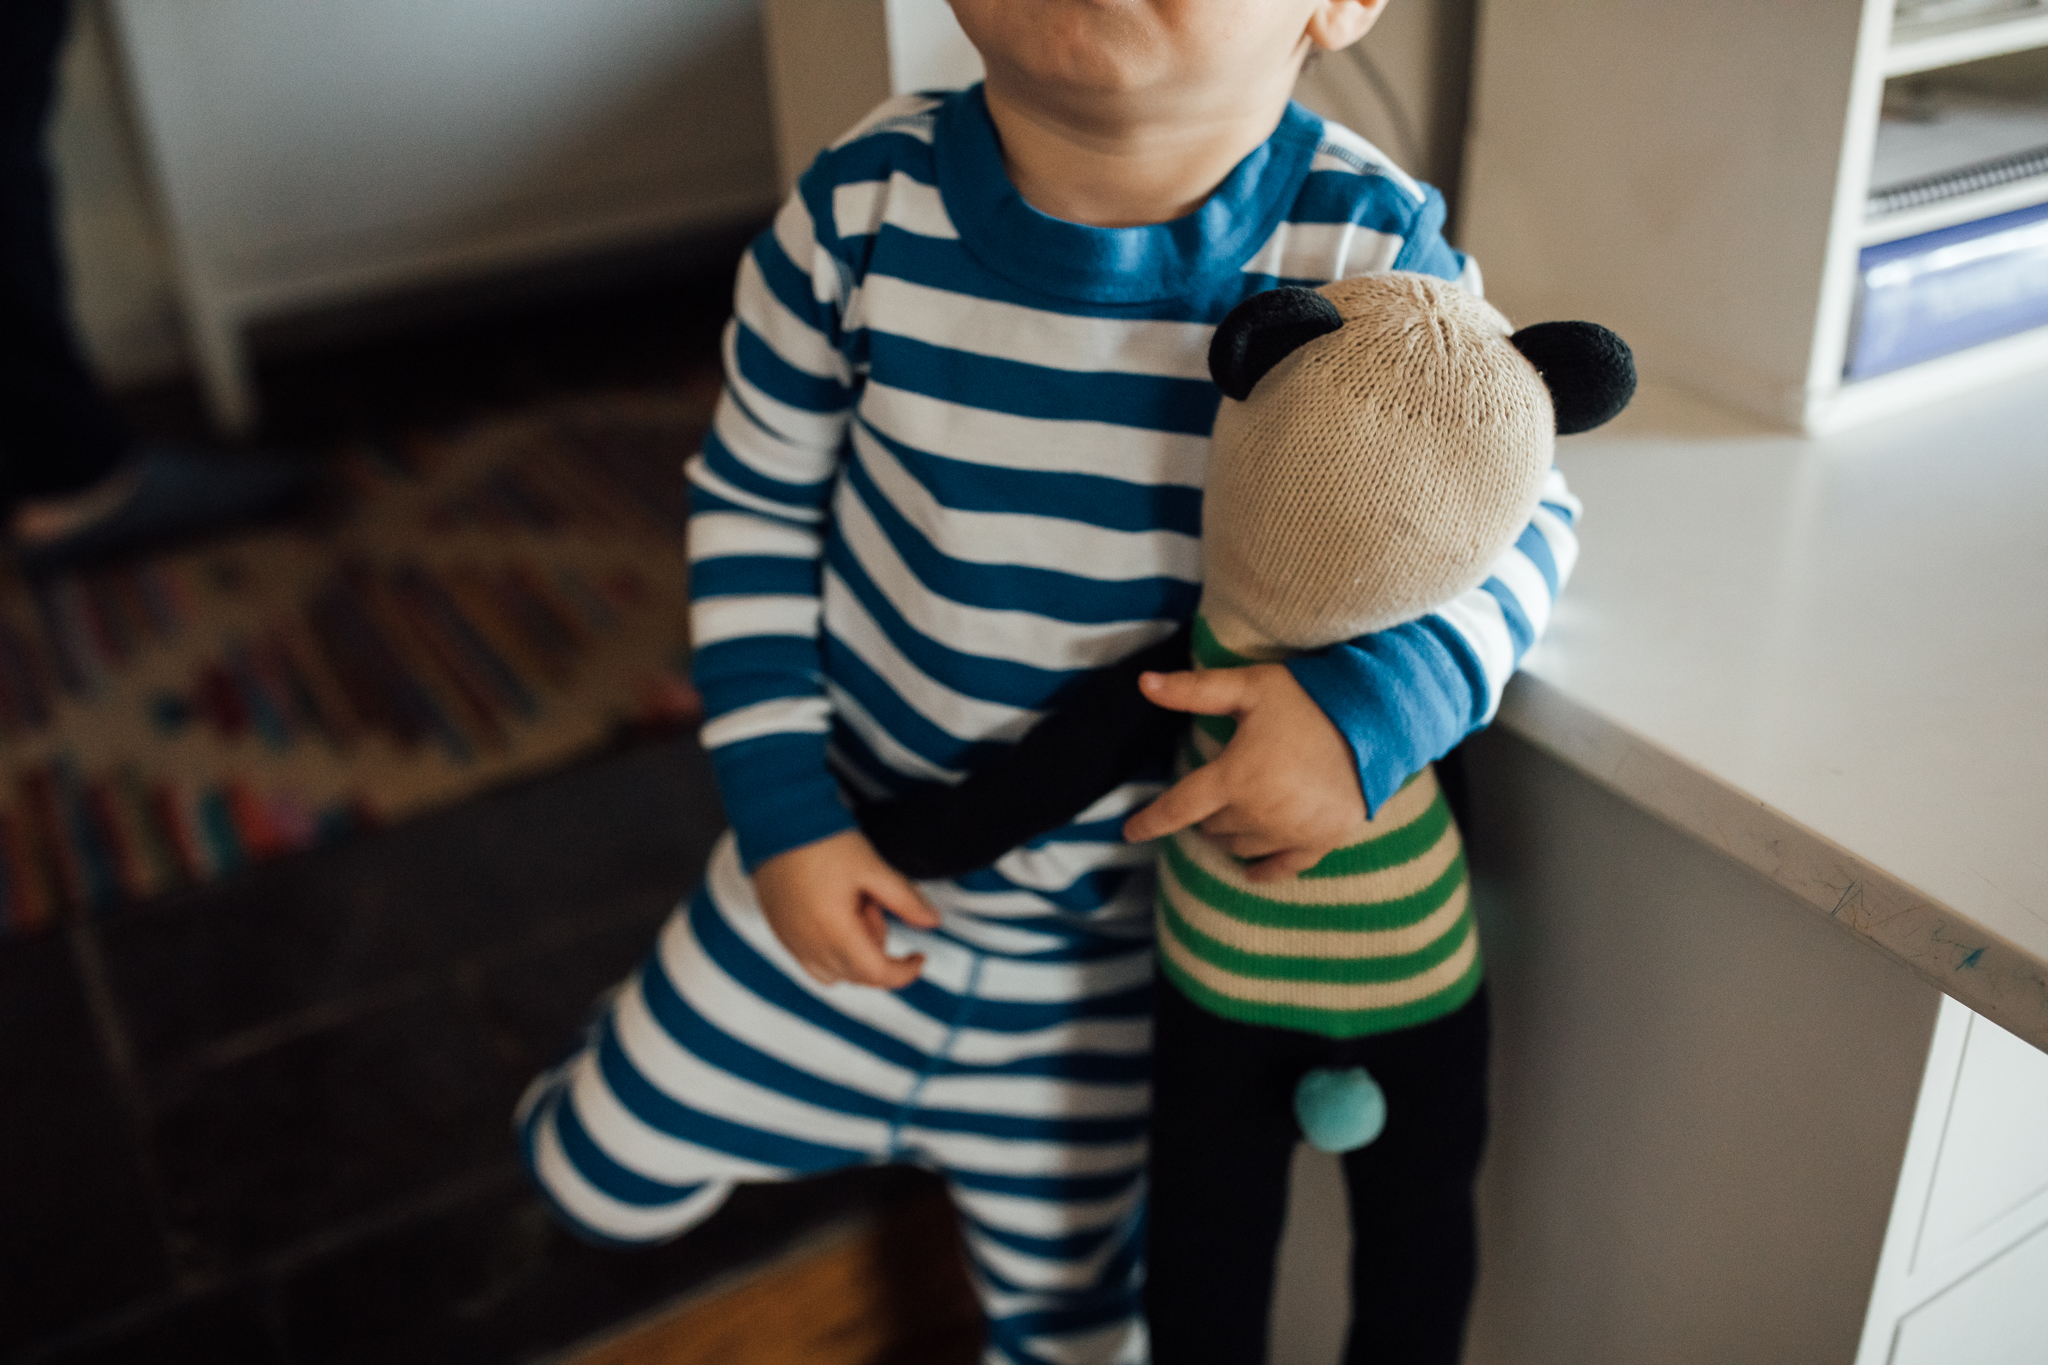 memphis-family-photographer-in-home-thewarmtharoundyou (146 of 140).jpg